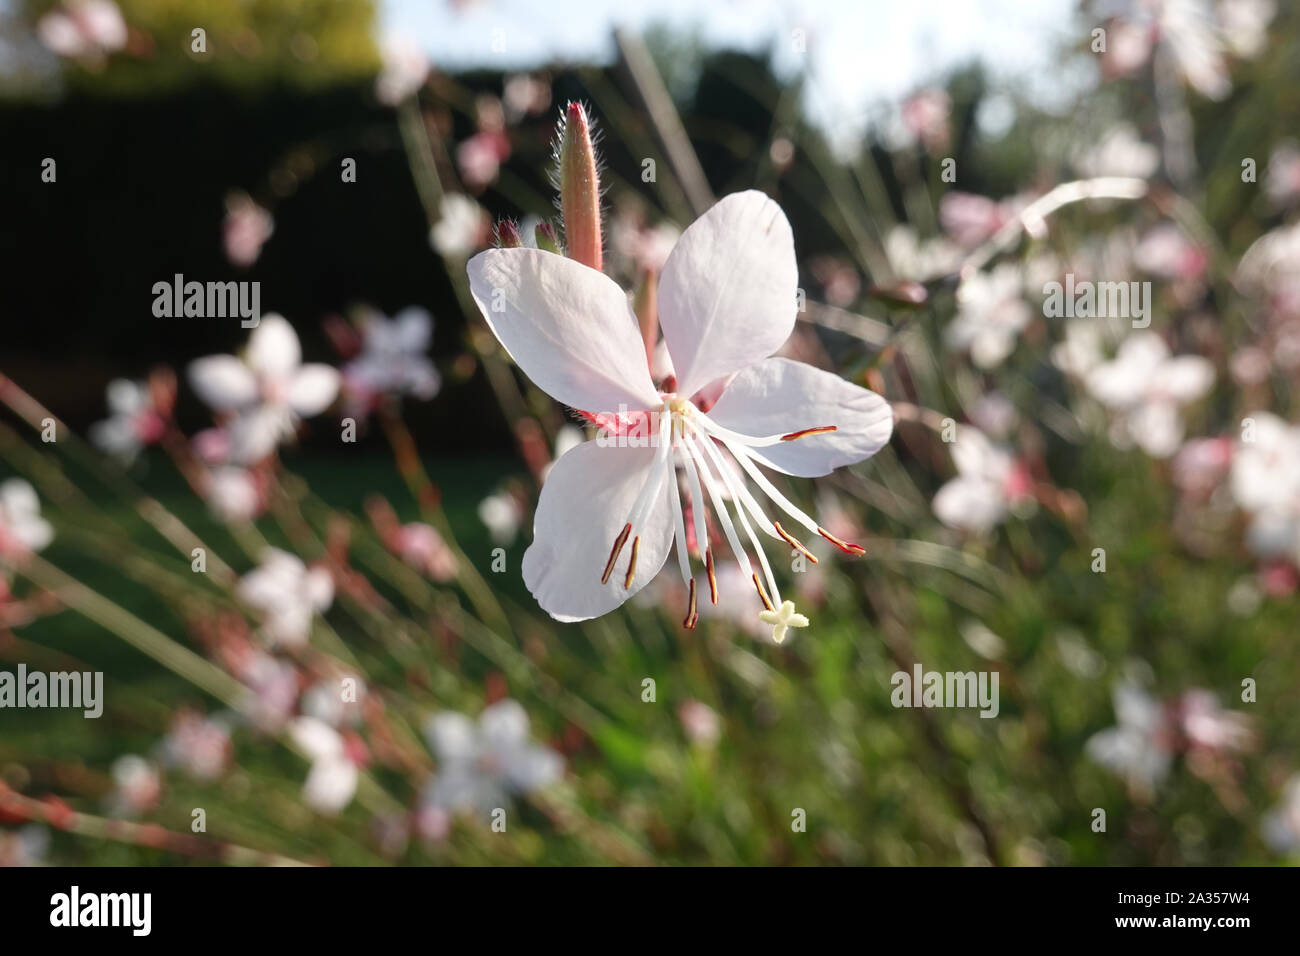 Tiny white flower of gaura lindheimeri or whirling butterflies in the sun with morning dew oenothera lindheimeri, Lindheimer's beeblossom close up Stock Photo